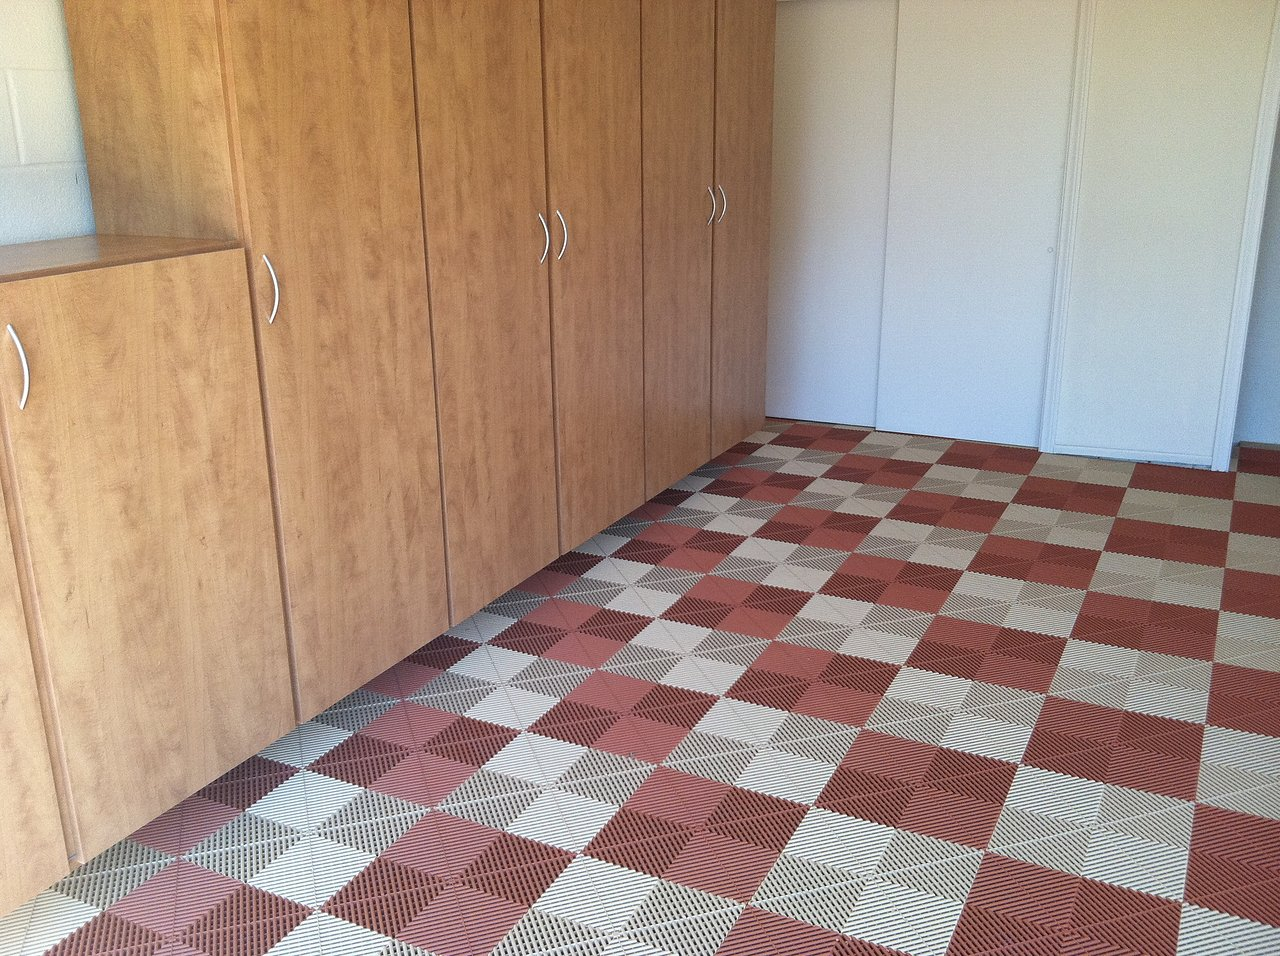 Garage Tile Flooring, Solana Beach